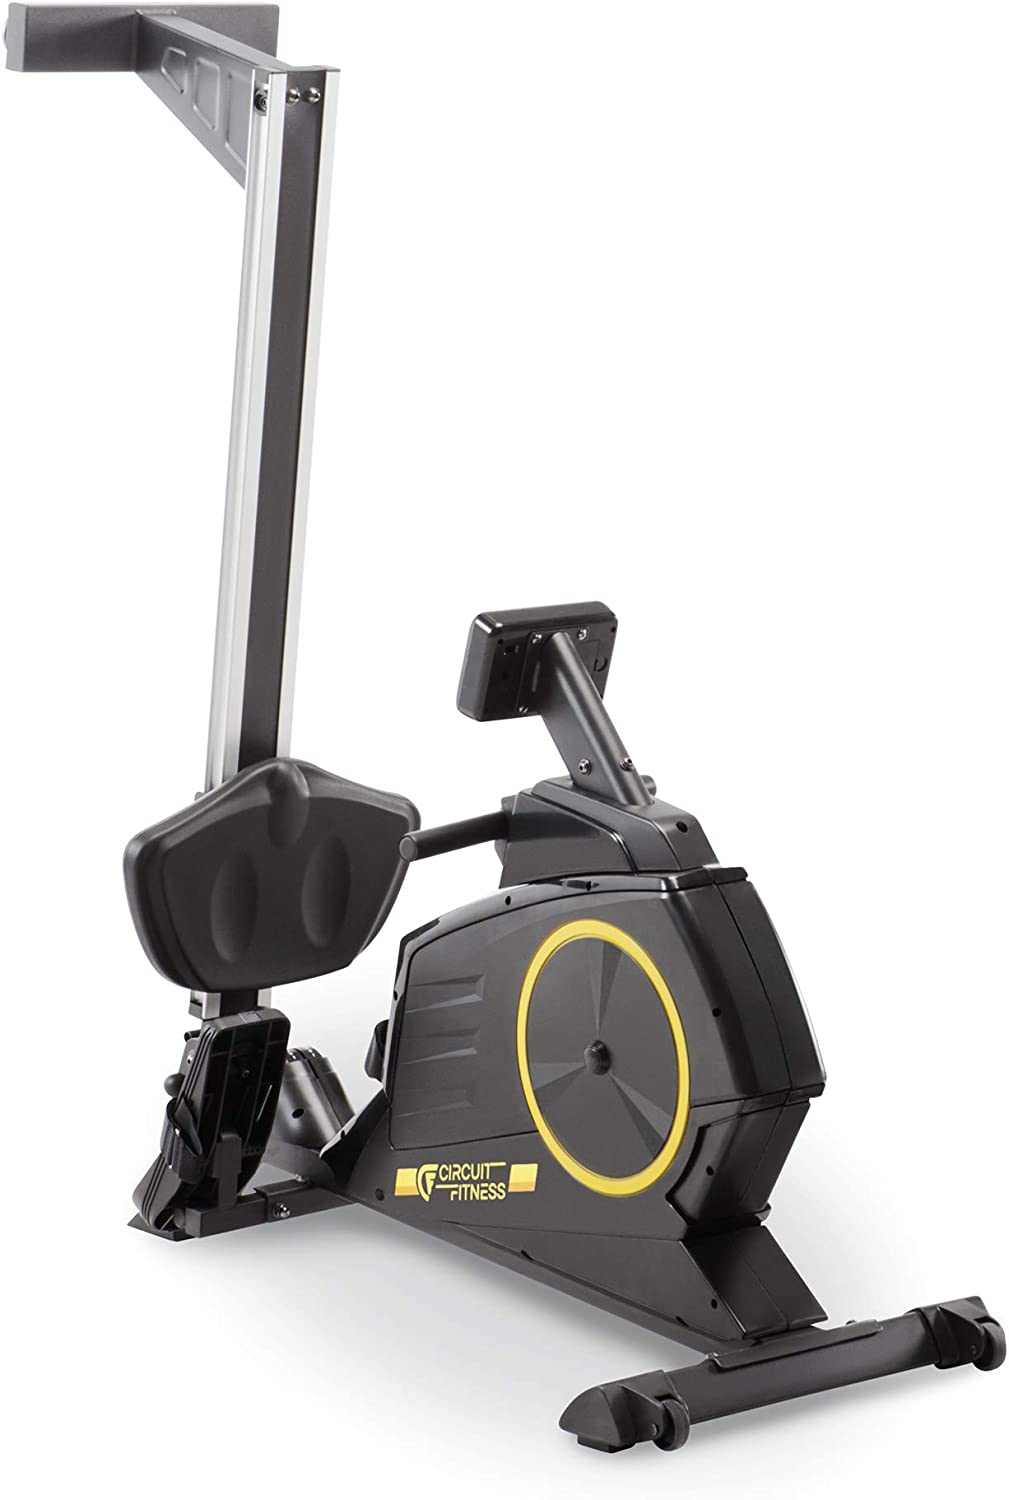 Circuit Fitness Deluxe Rowing Machine - Folded Position